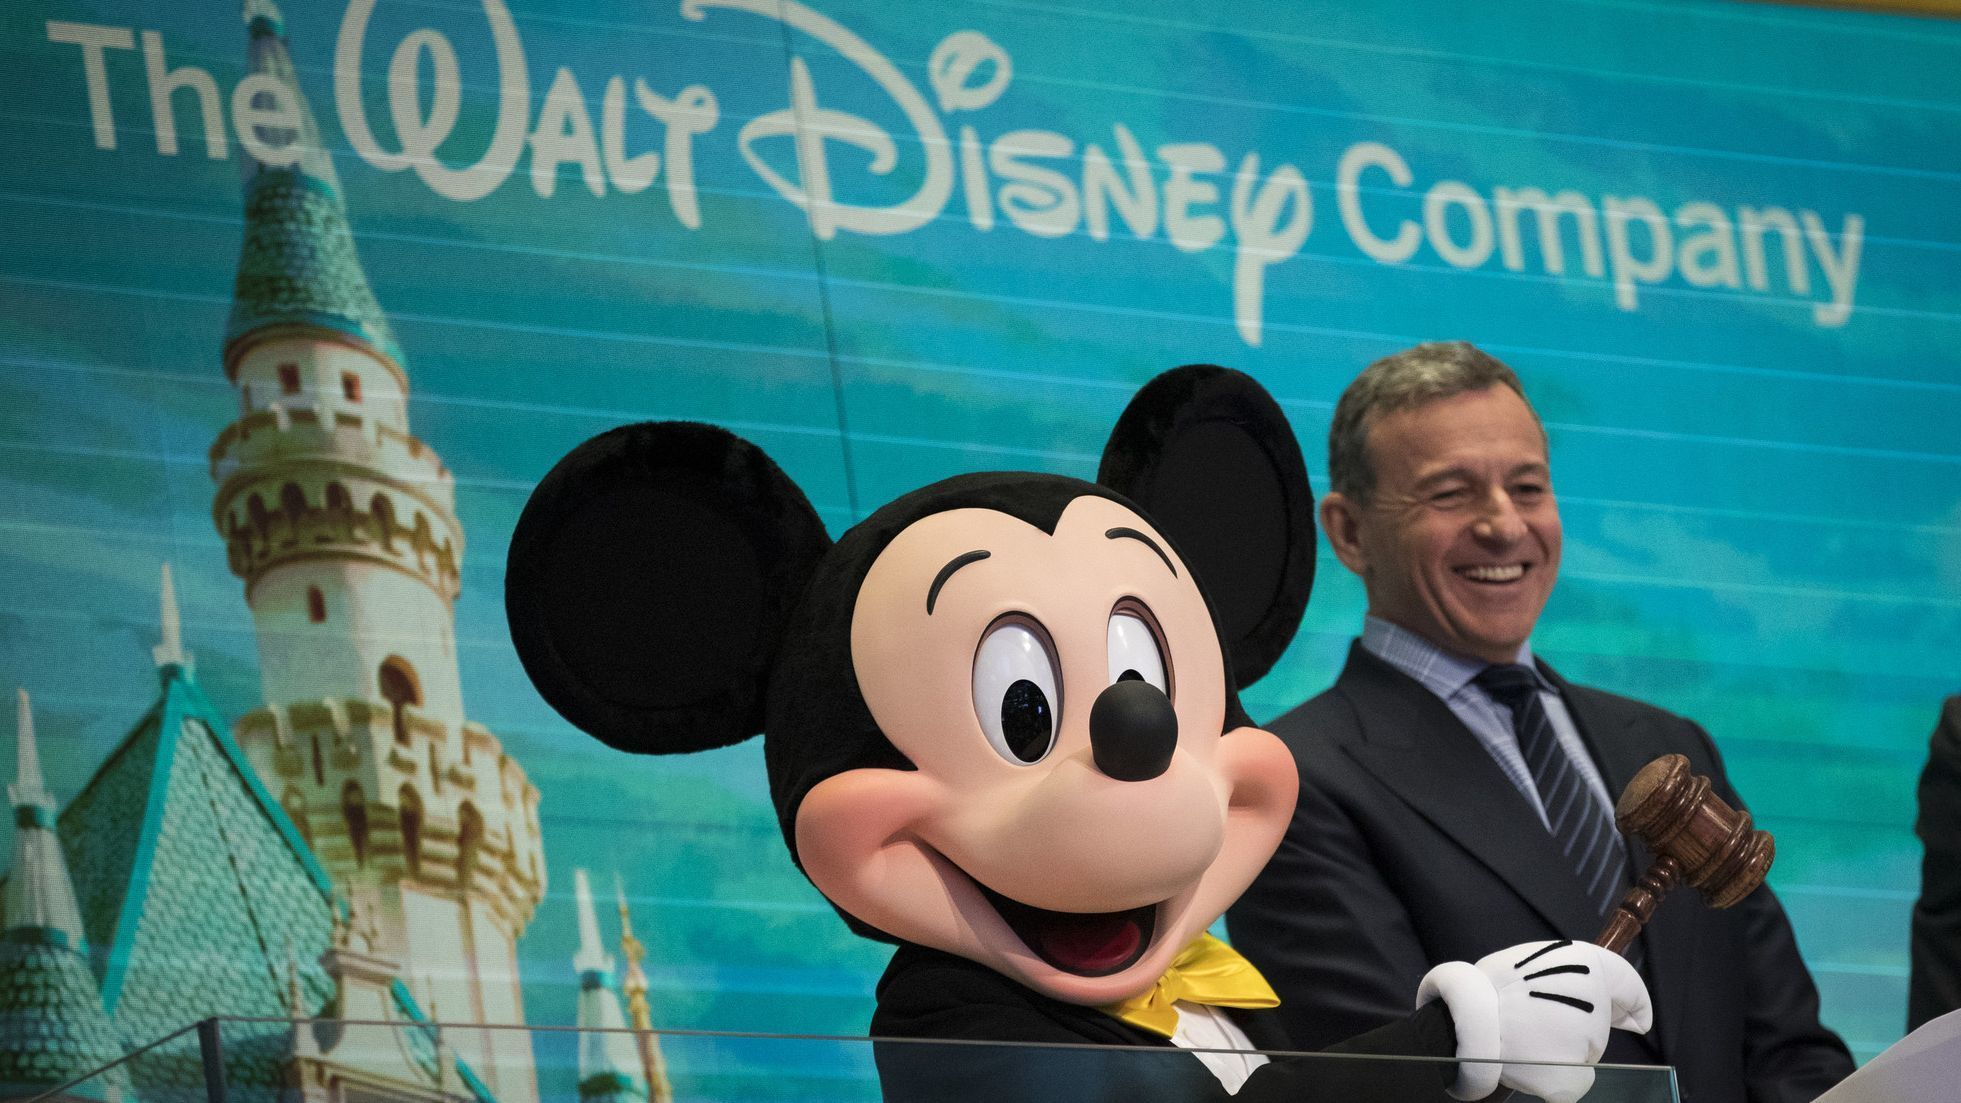 Disney-Fox deal is complete; CEO Bob Iger's big swing could change media industry